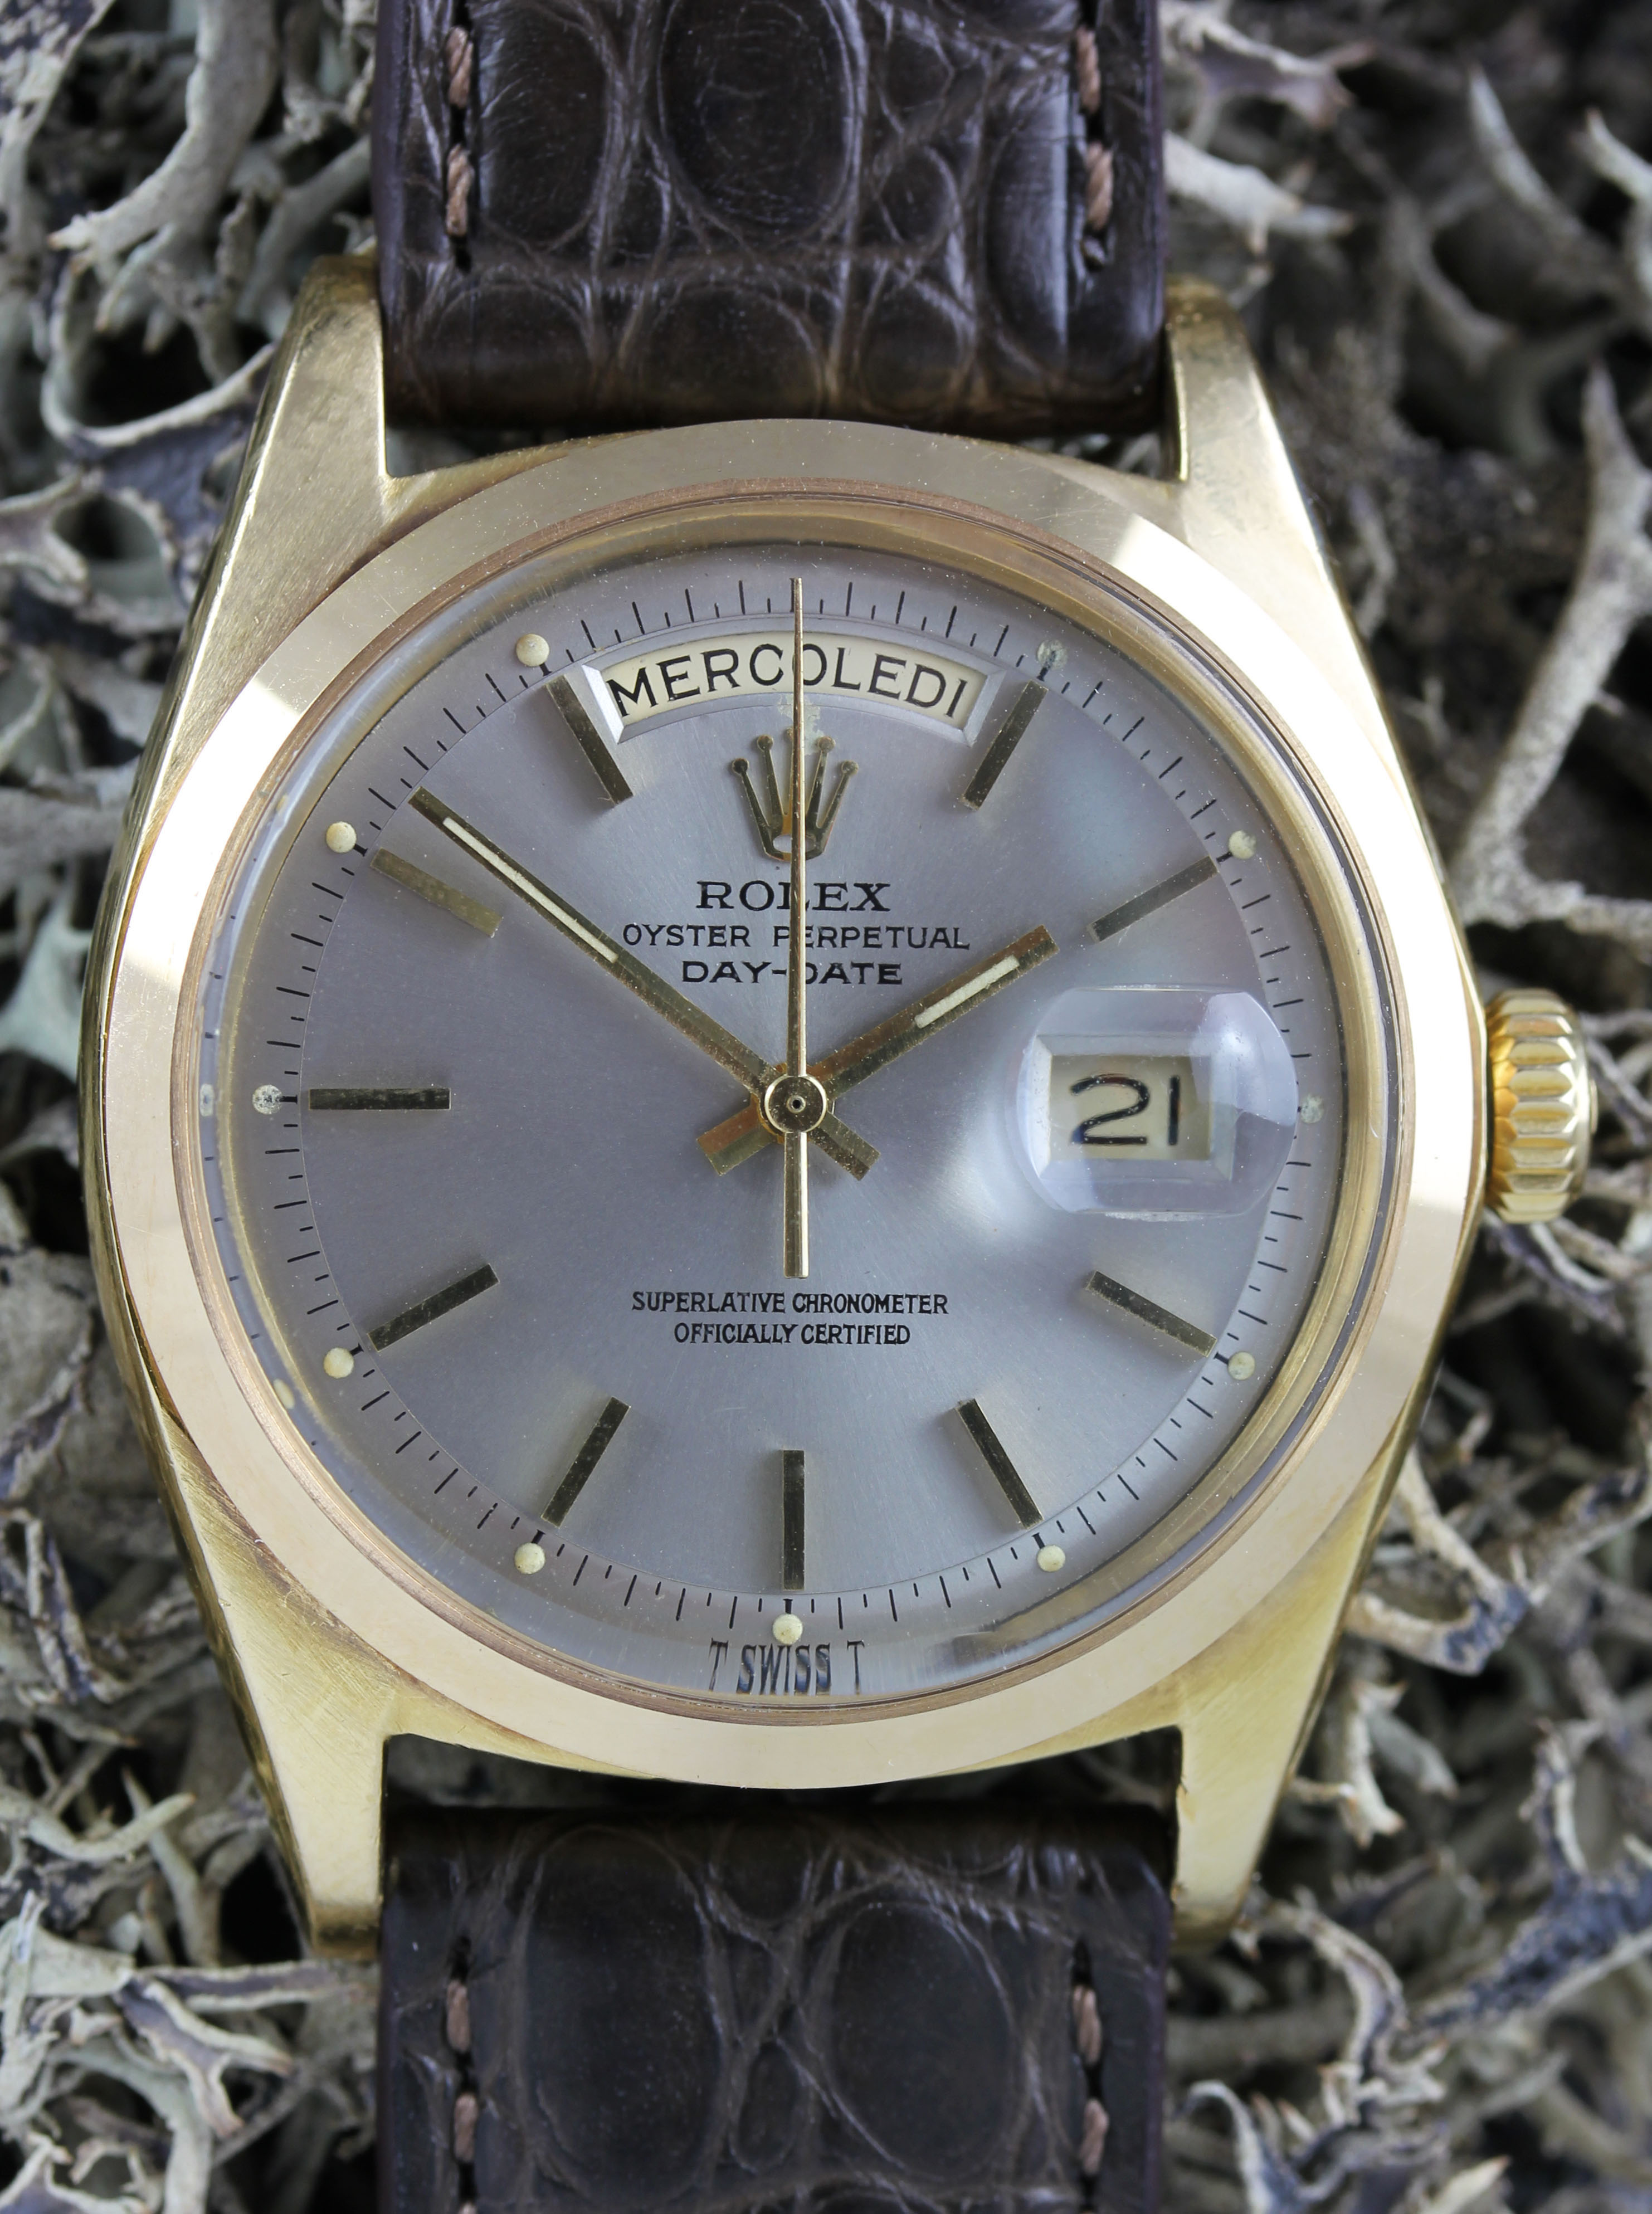 ROLEX Day-Date, ref. 1802 from 1974 with a rare plain bezel